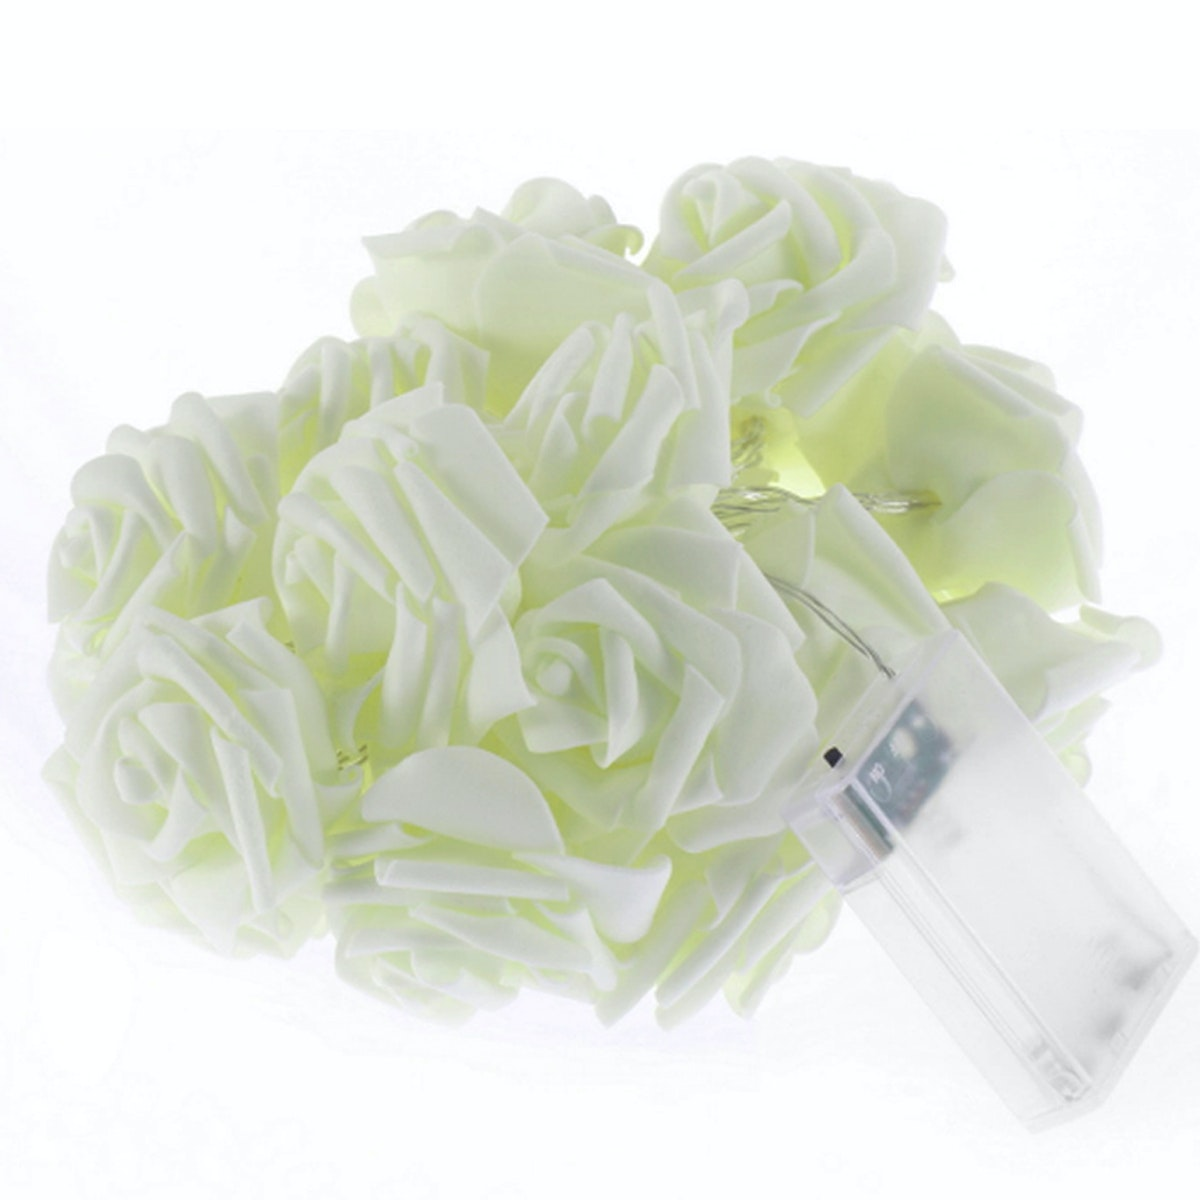 Lightcraft Indonesia Lampu Tumblr Rose Light Cool White